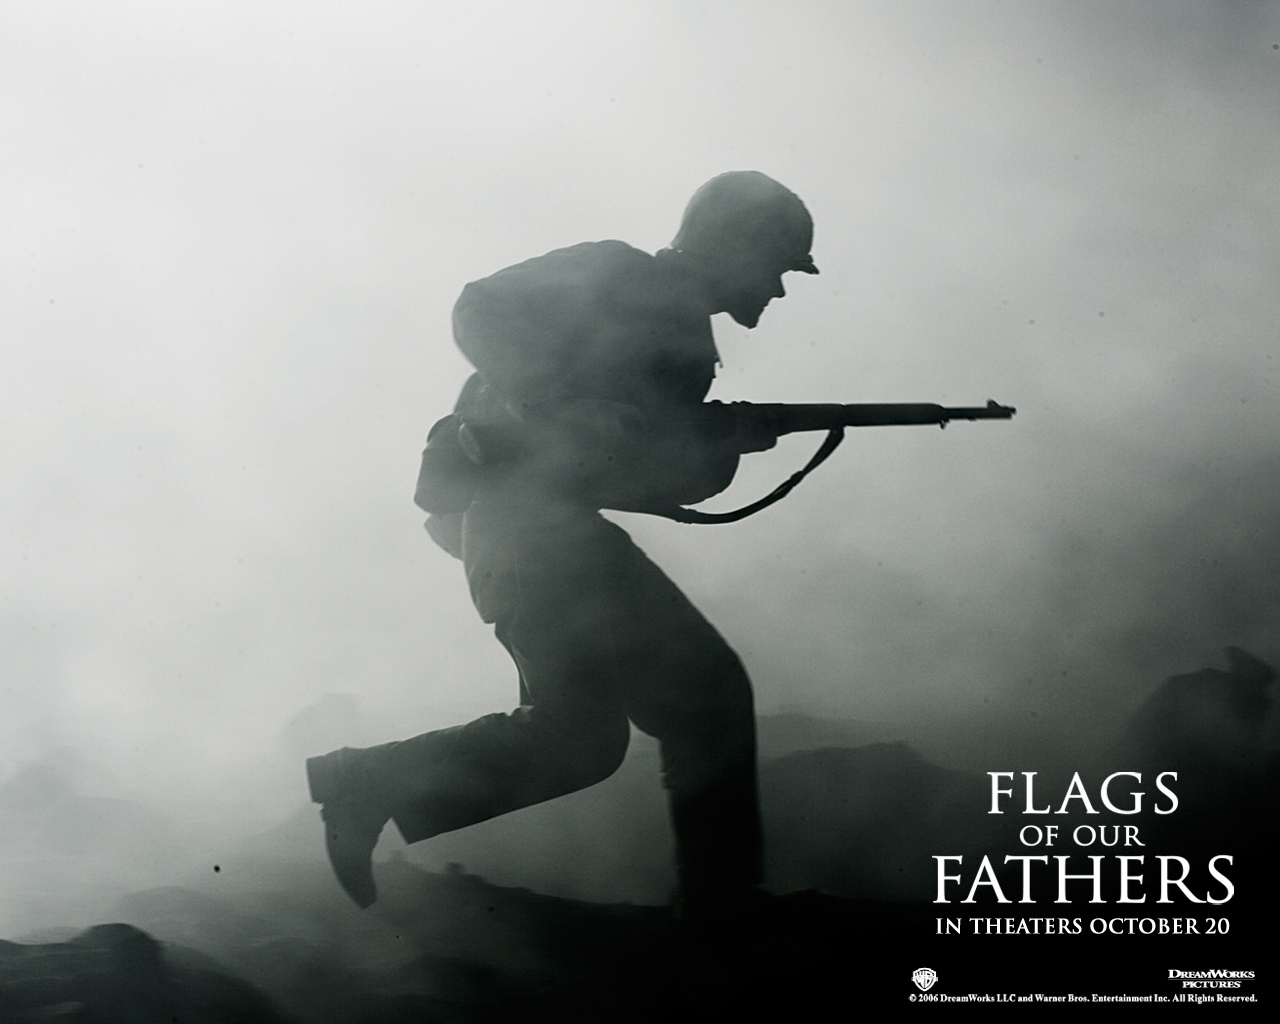 flags of our fathers Find great deals on ebay for flags of our fathers and flags of our fathers book shop with confidence.